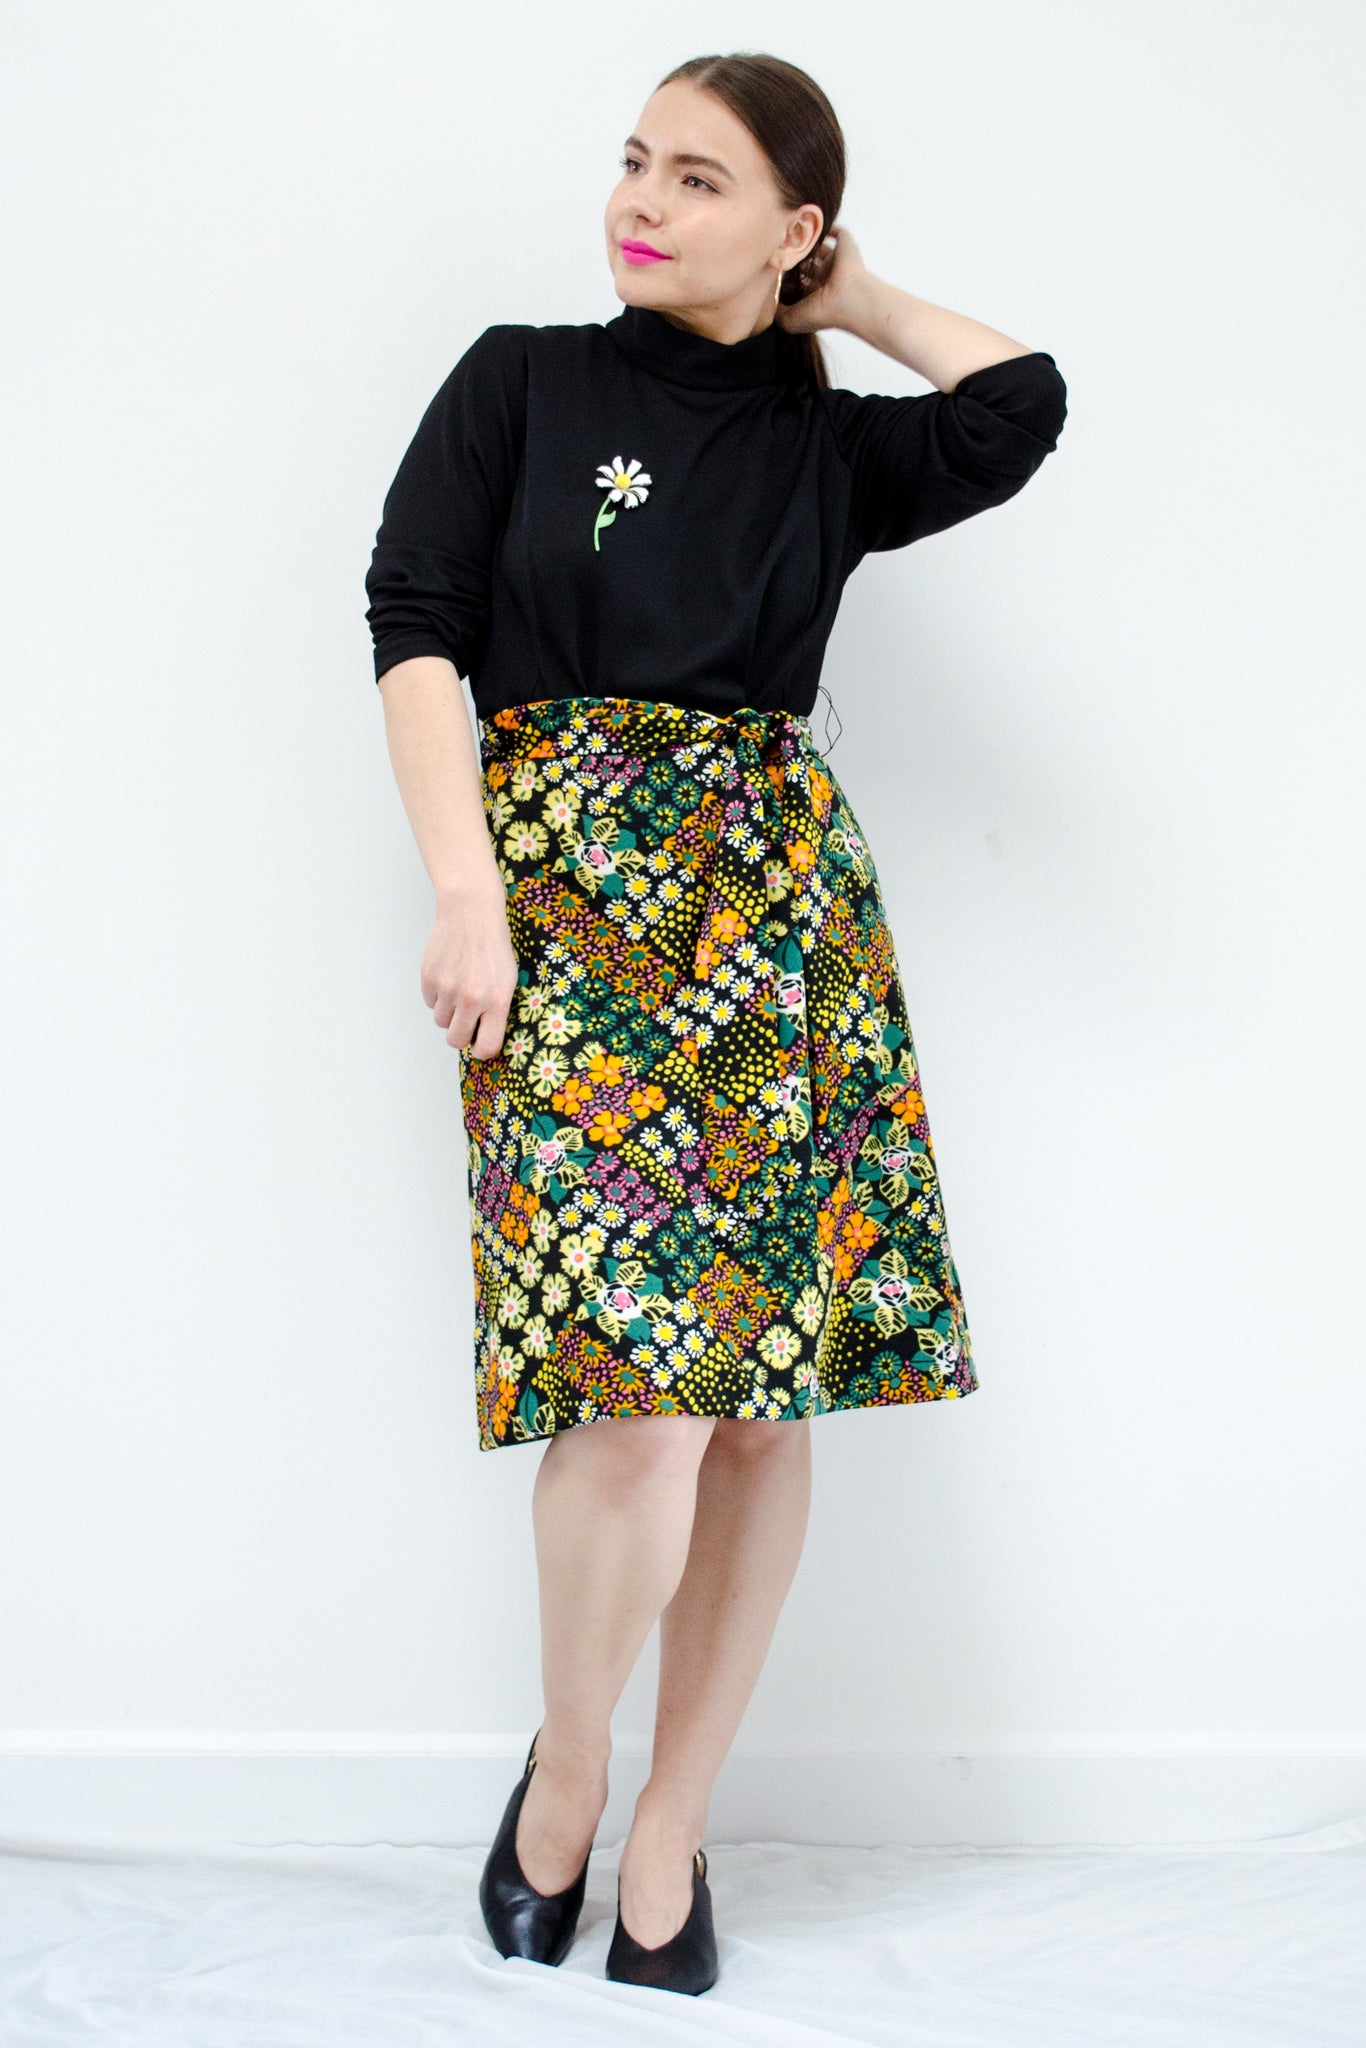 60s Black Floral Mod Dress / S-M